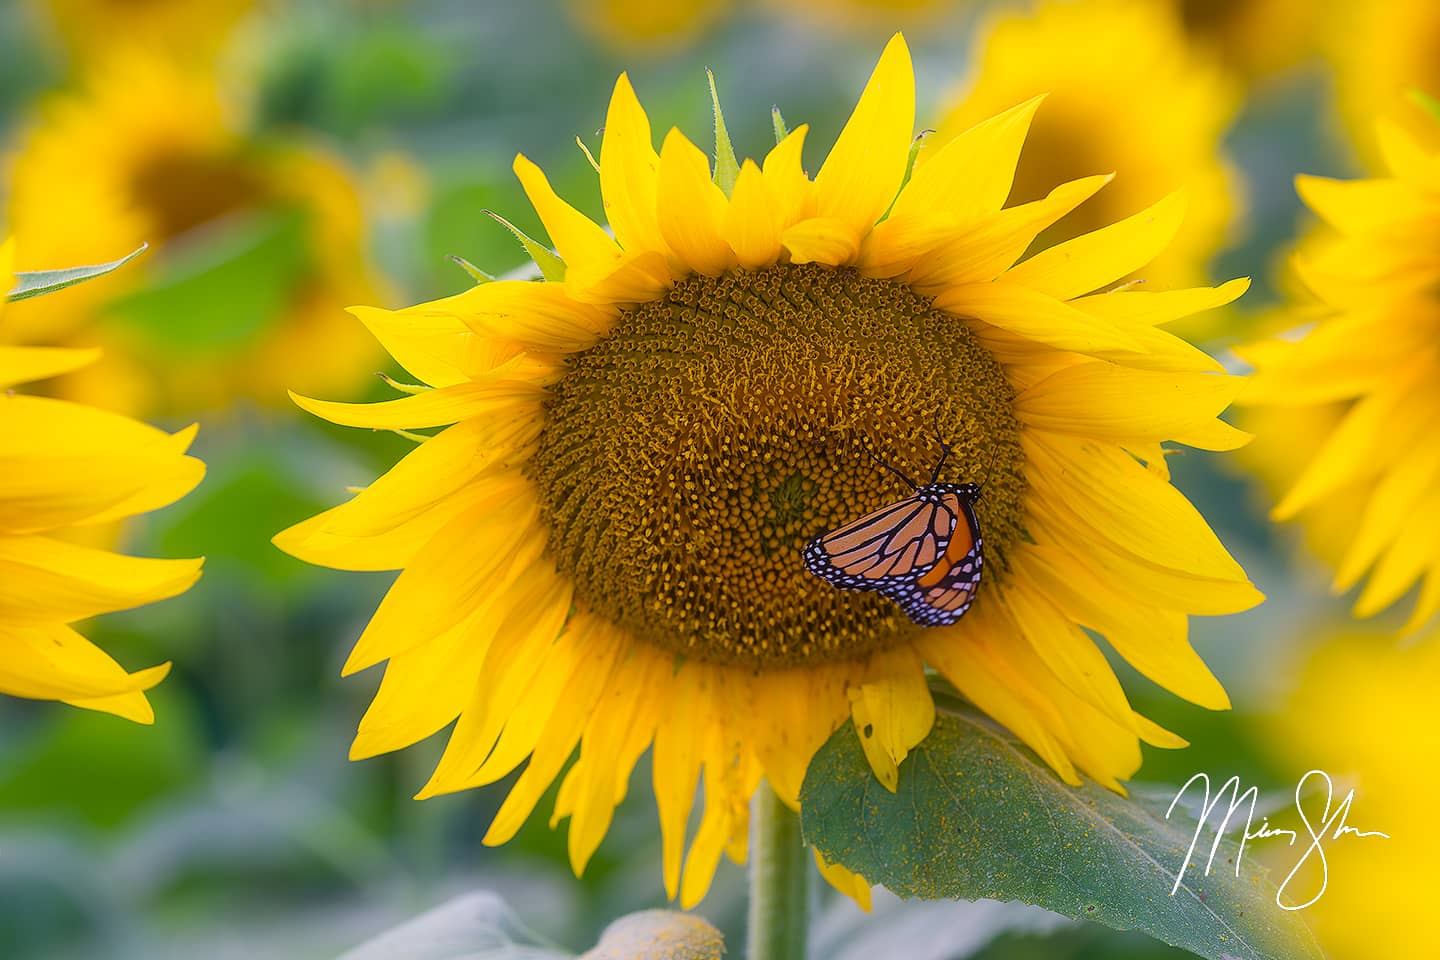 Open edition fine art print of Sunflower Butterfly from Mickey Shannon Photography. Location: Lawrence, KS